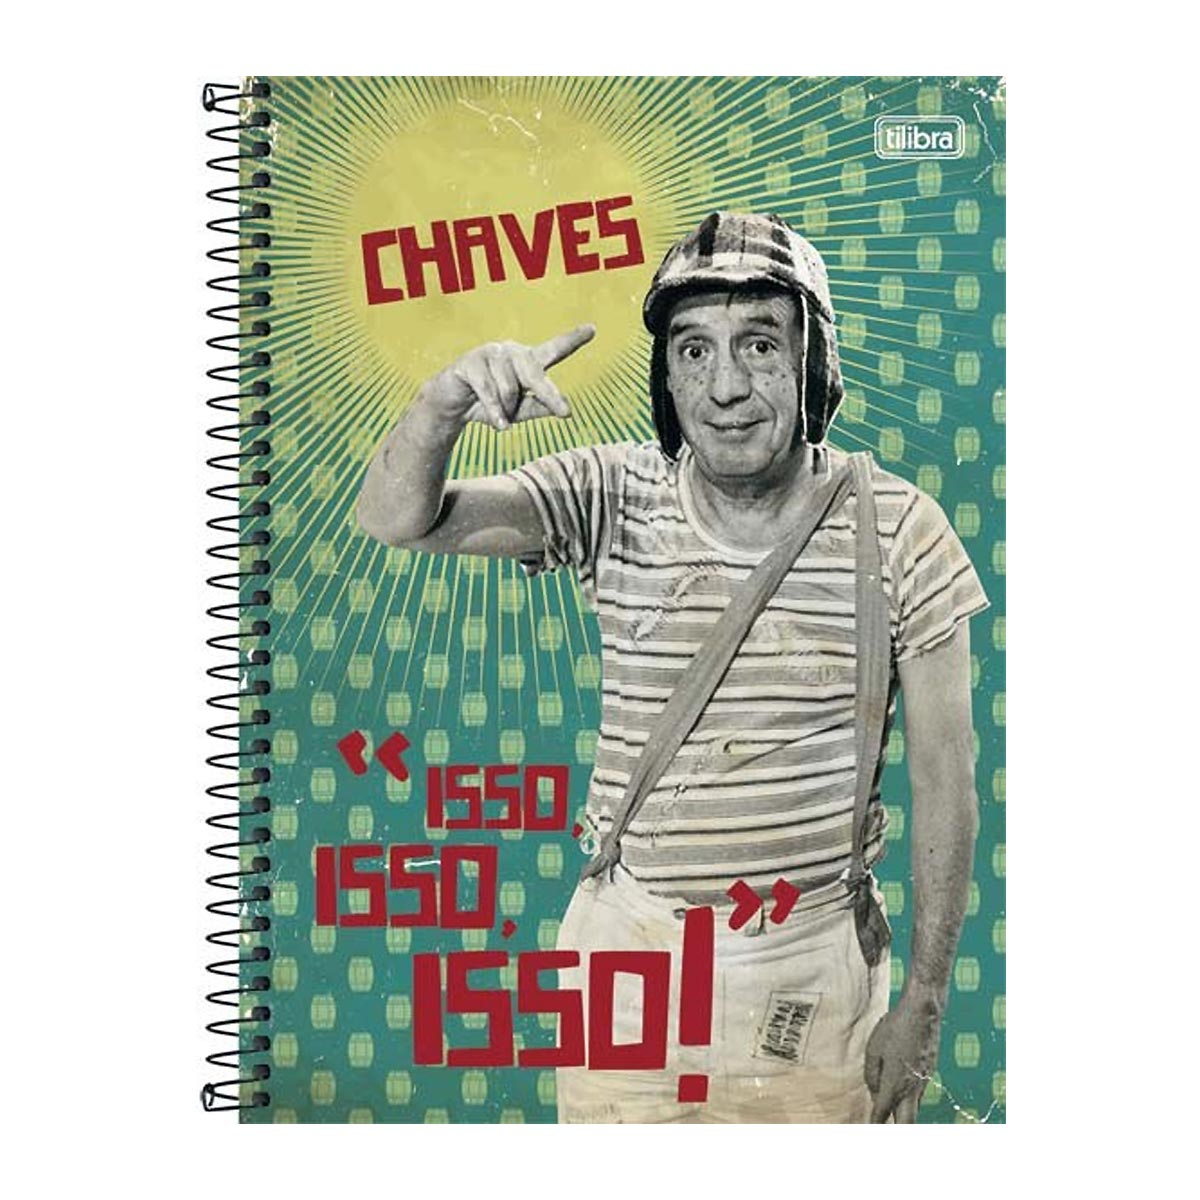 Caderno Chaves Isso Isso Isso Vintage 10 Matérias